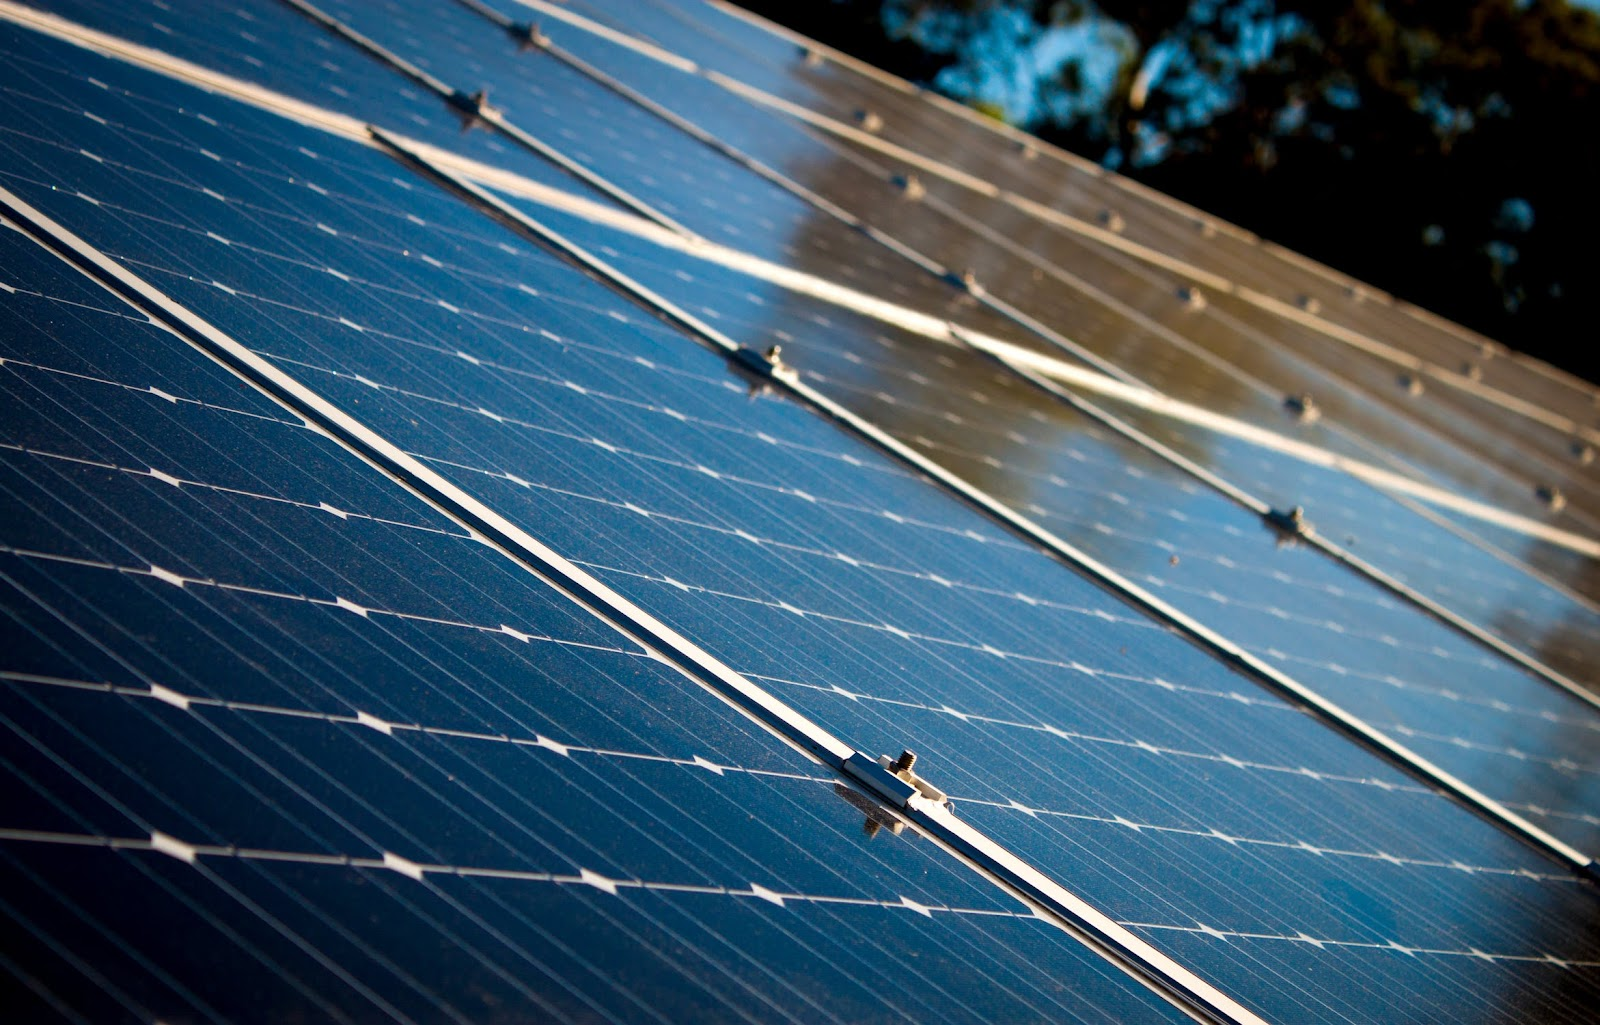 What-is-Slowing-Down-The-Growth-of-Solar-Energy-Industry